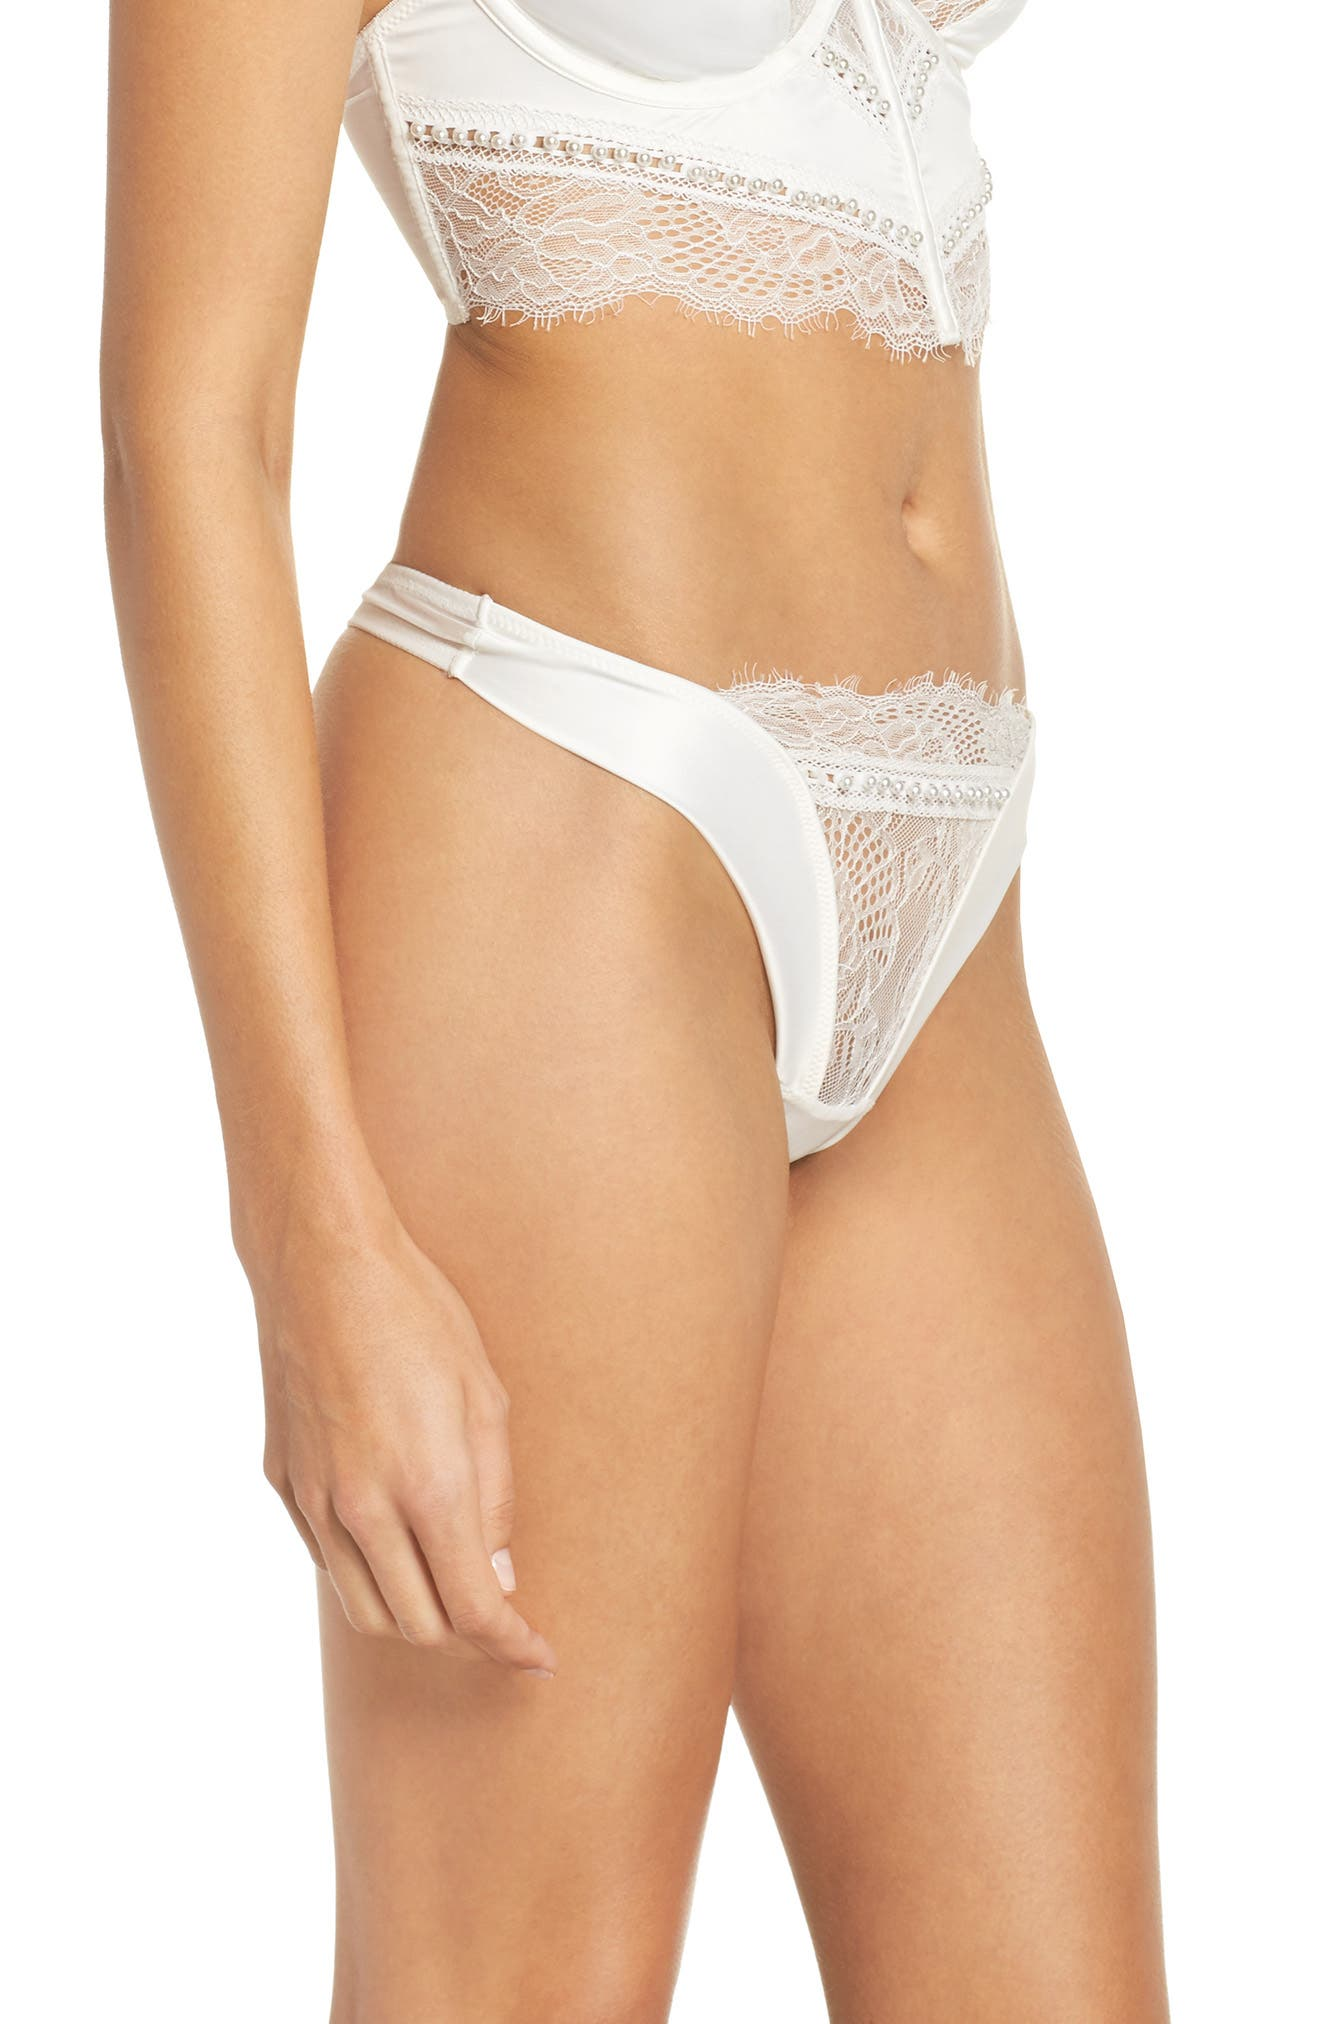 Thistle & Spire Sterling Embellished Lace Thong,                             Alternate thumbnail 3, color,                             Ivory